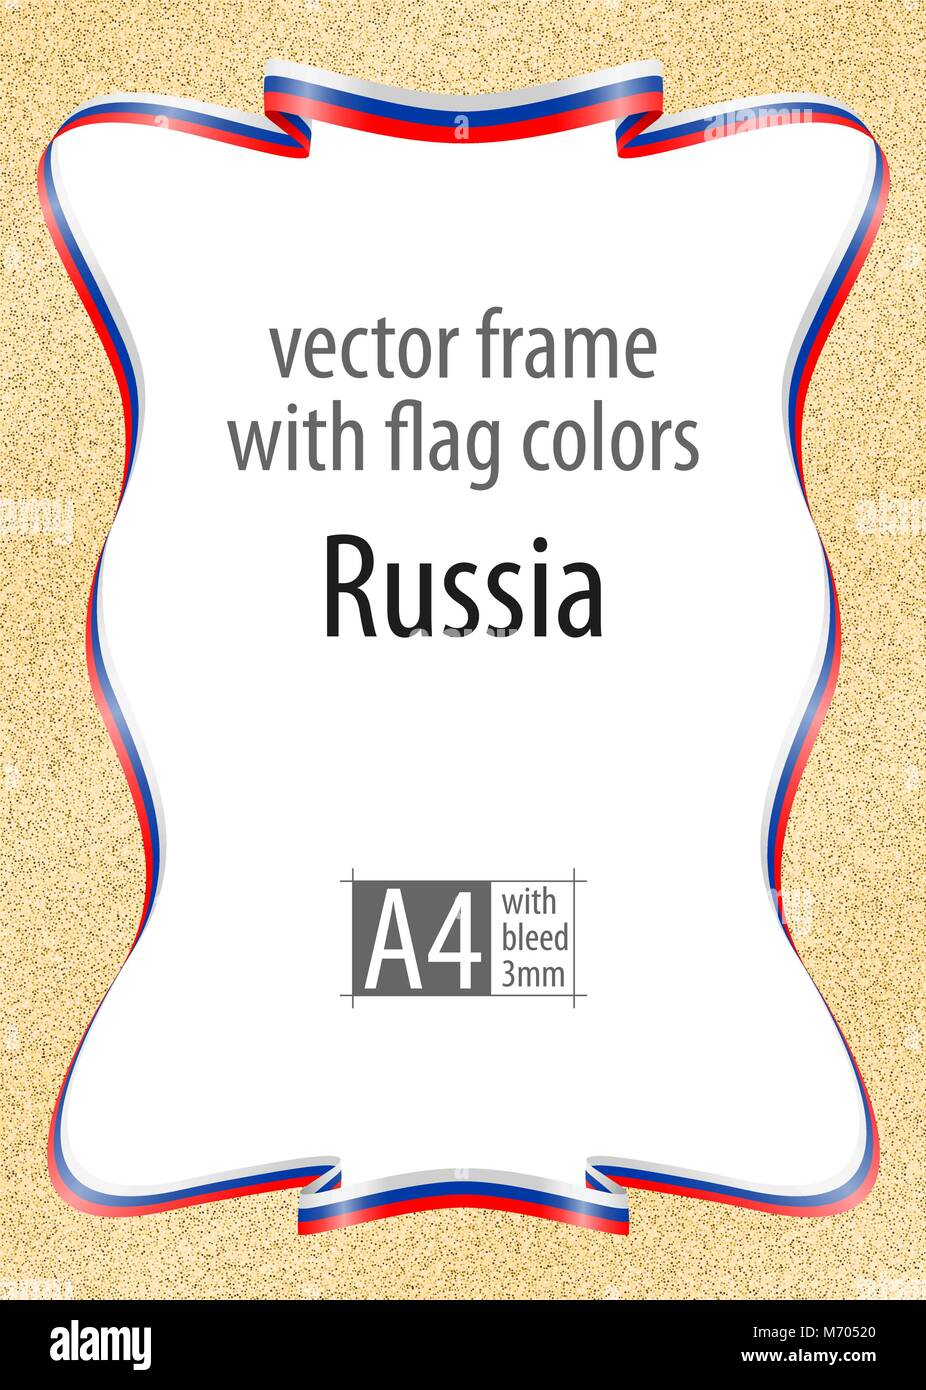 Frame And Border Of Ribbon With The Colors Of The Russia Flag Stock